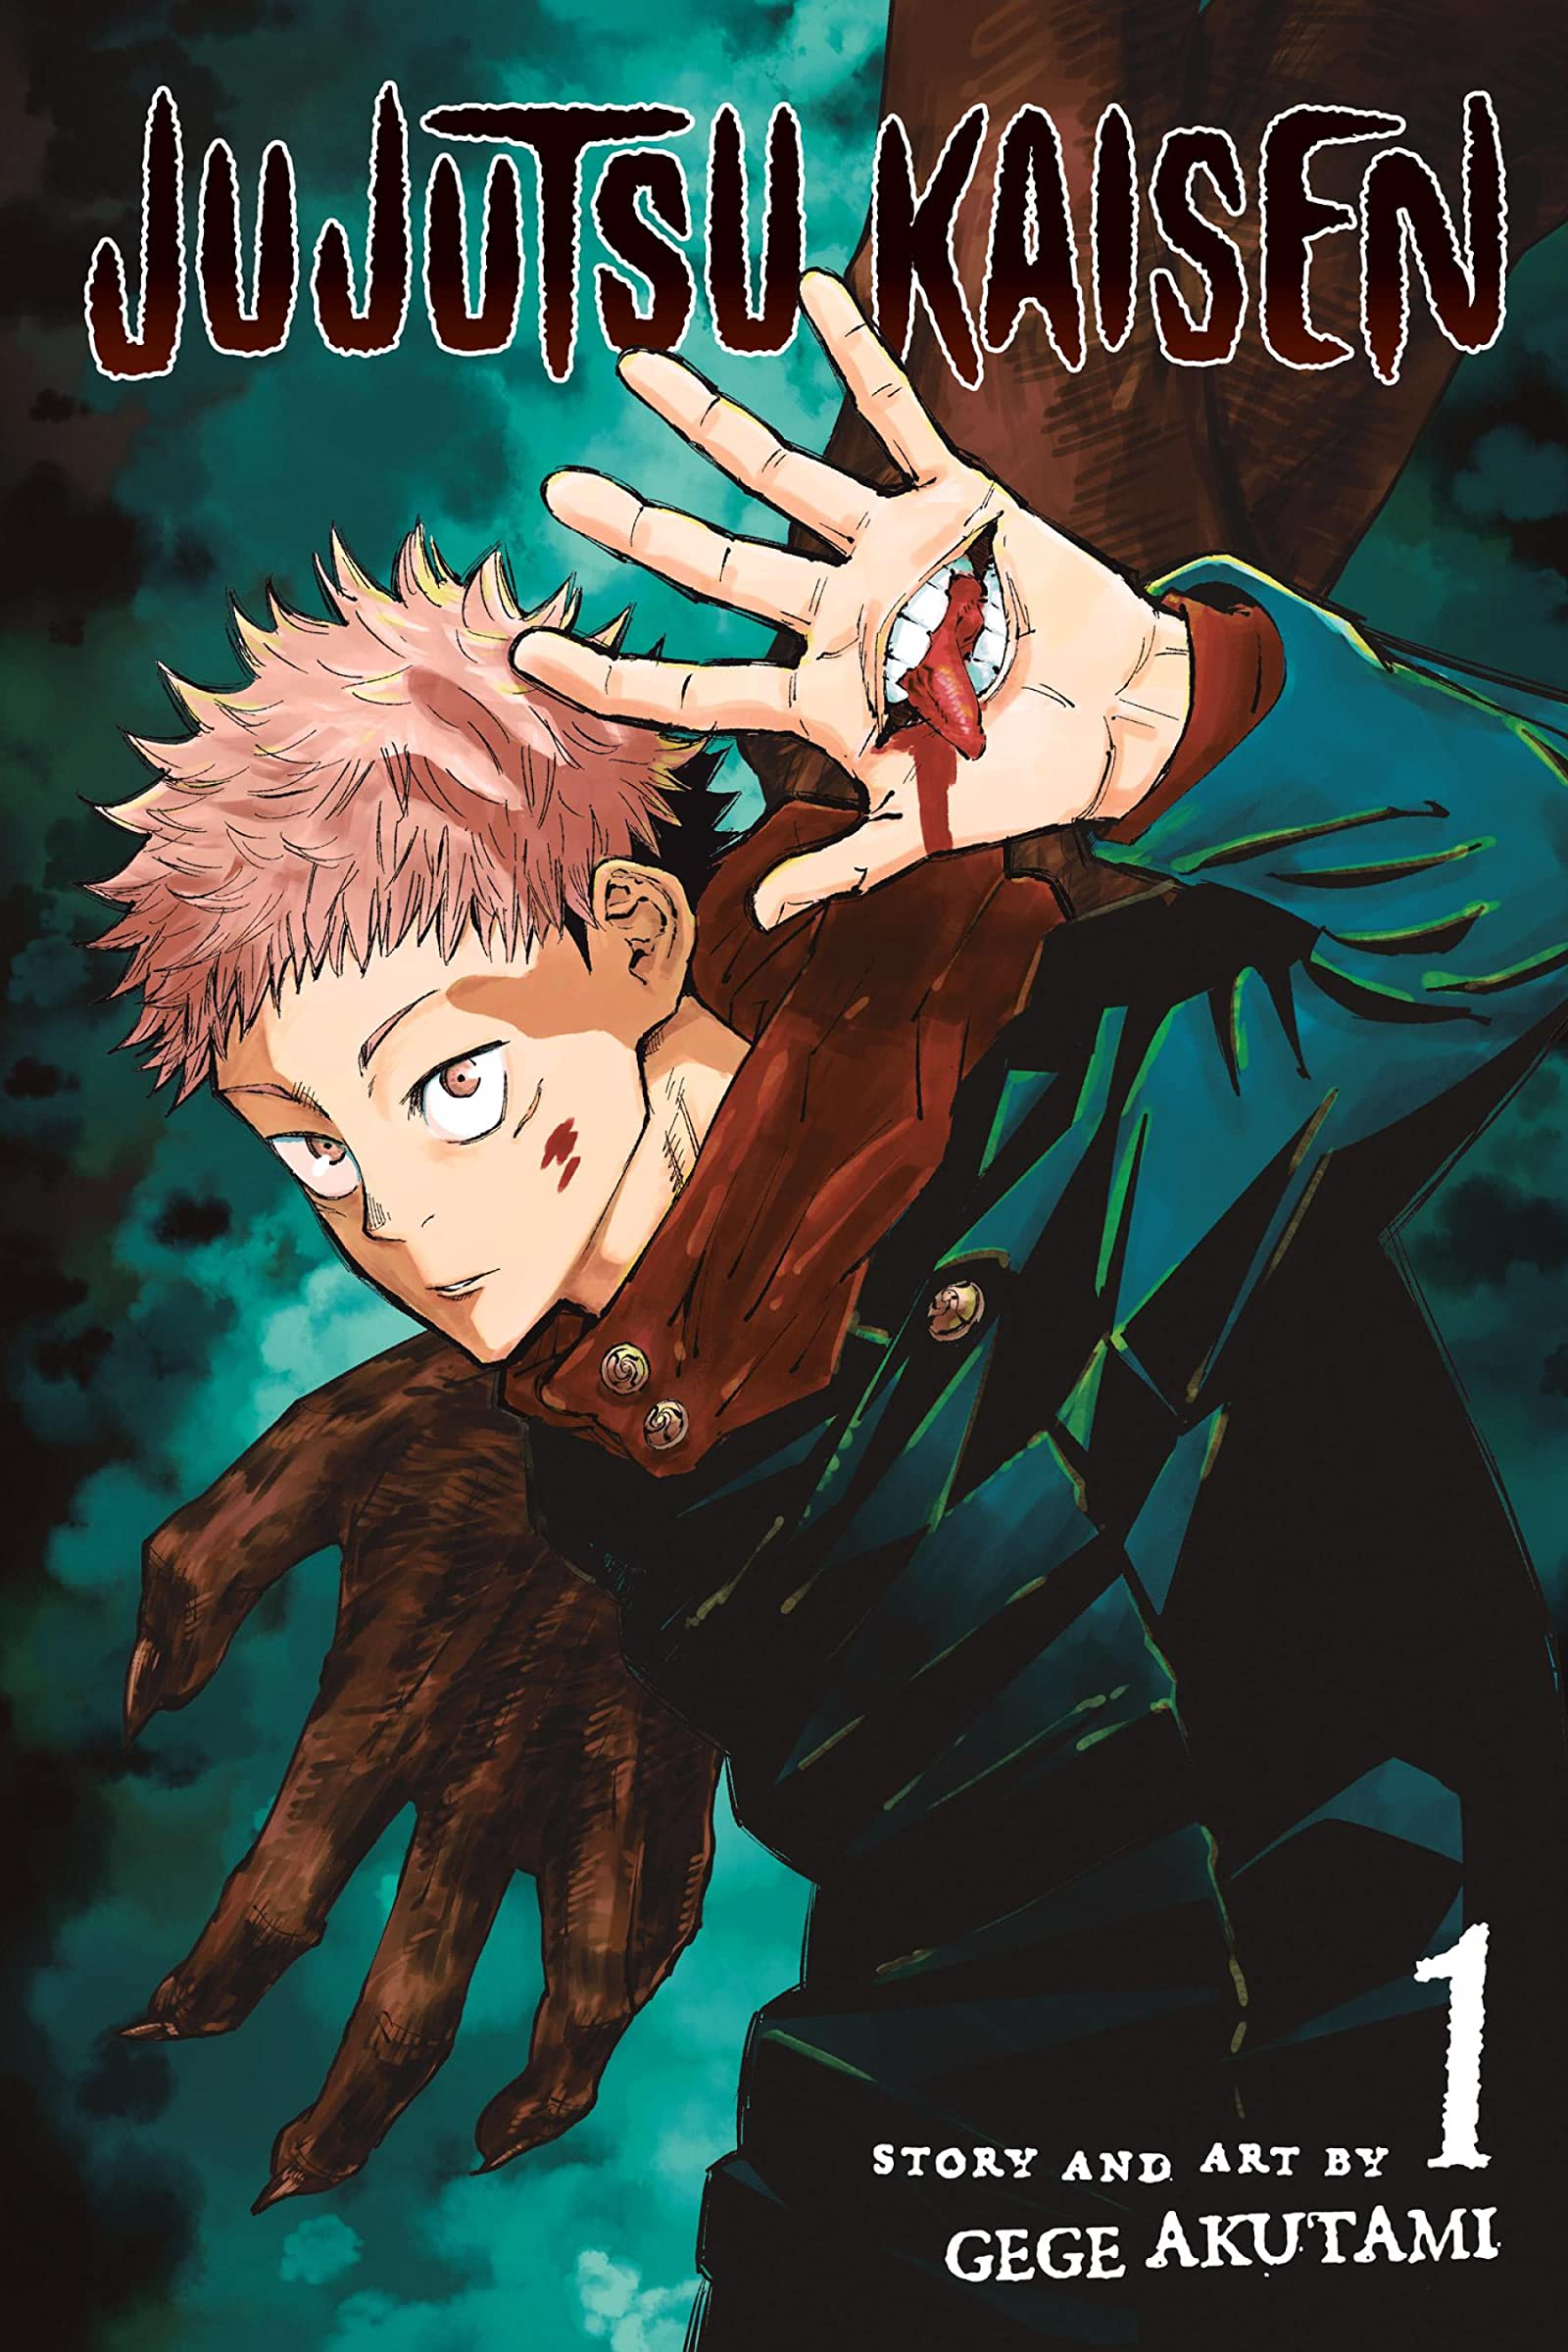 Jujutsu Kaisen Wallpaper 7